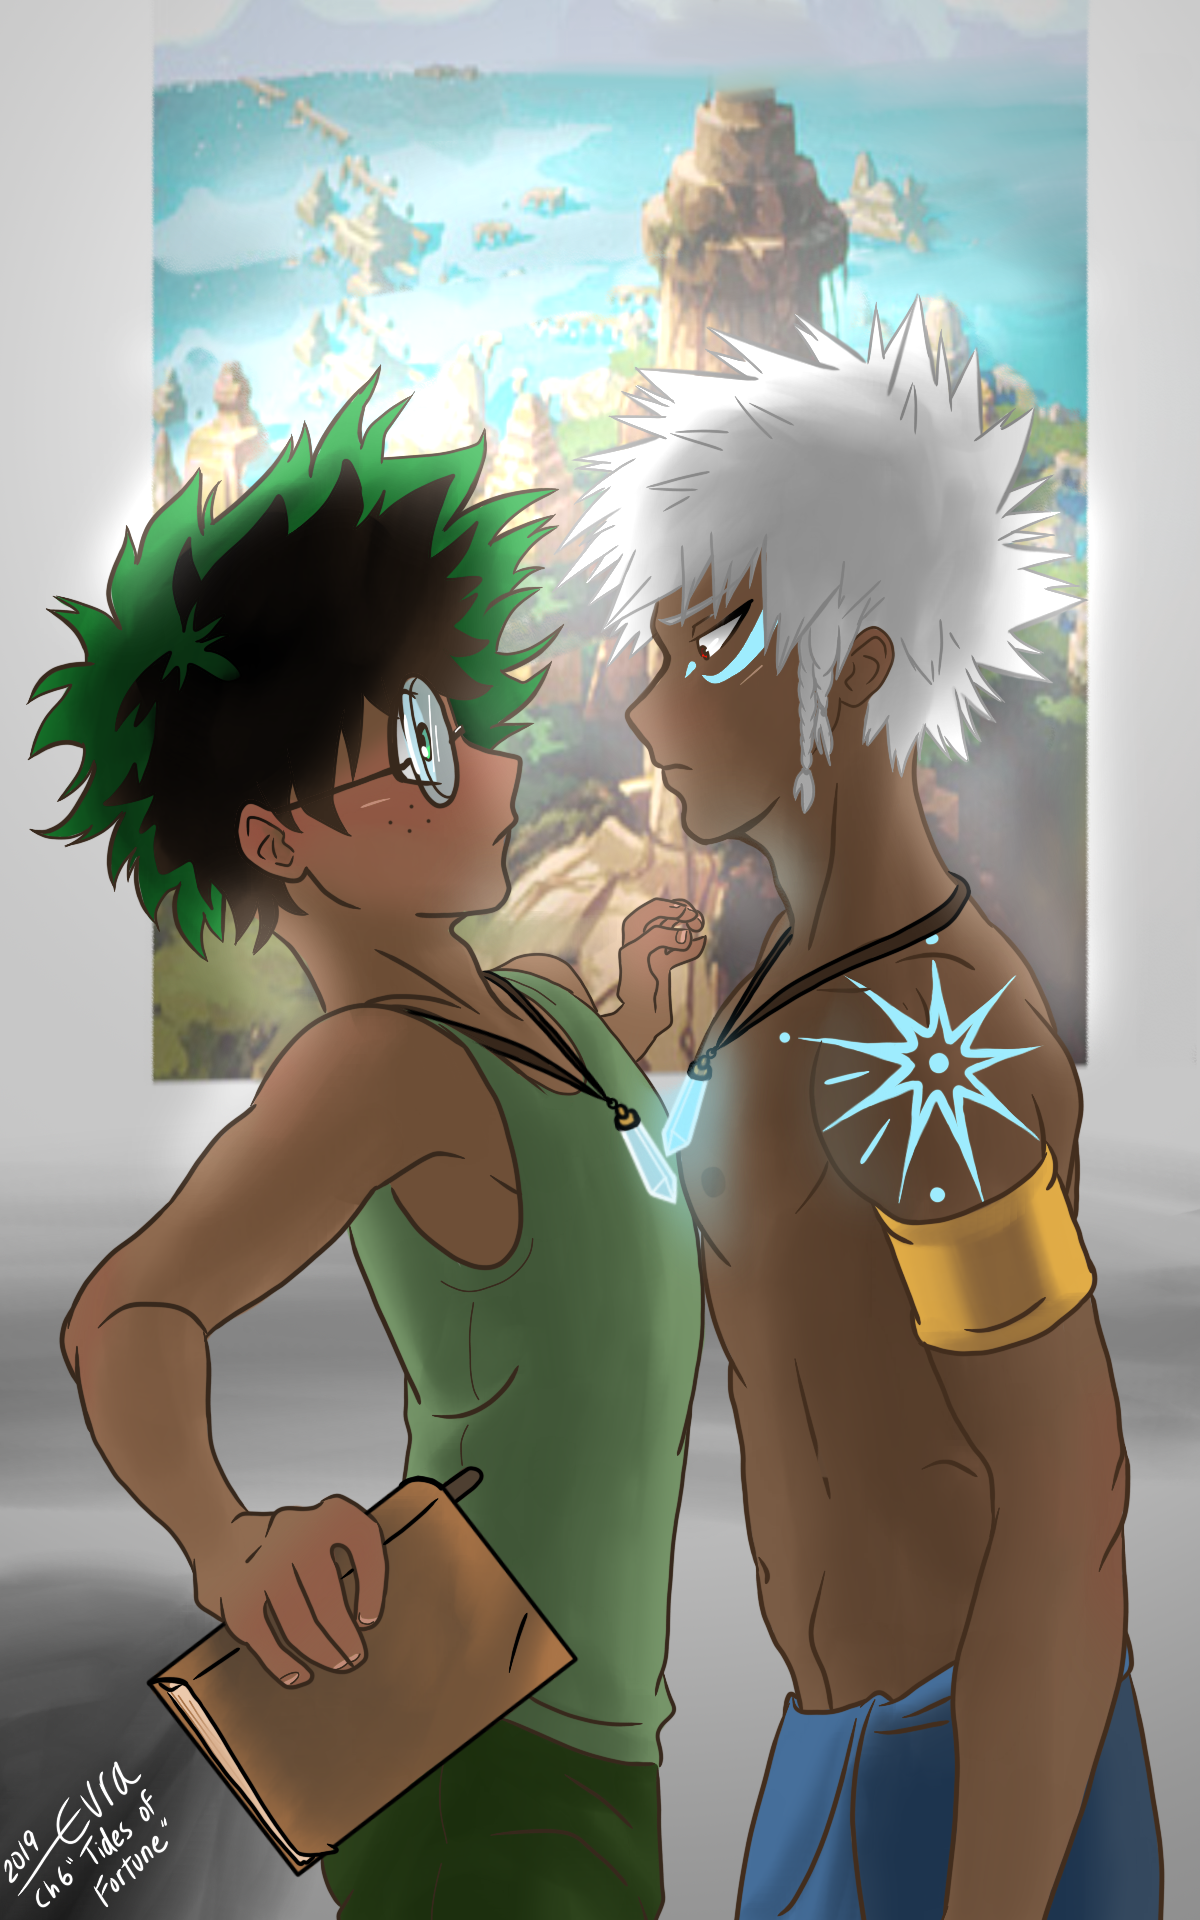 Atlantis Au By Tsukithewolf Titled Tides Of Fortune Is On Ao3 And Inspired This Art This Scene Is Taken From Chapter 6 Anime My Hero Boku No Hero Academia